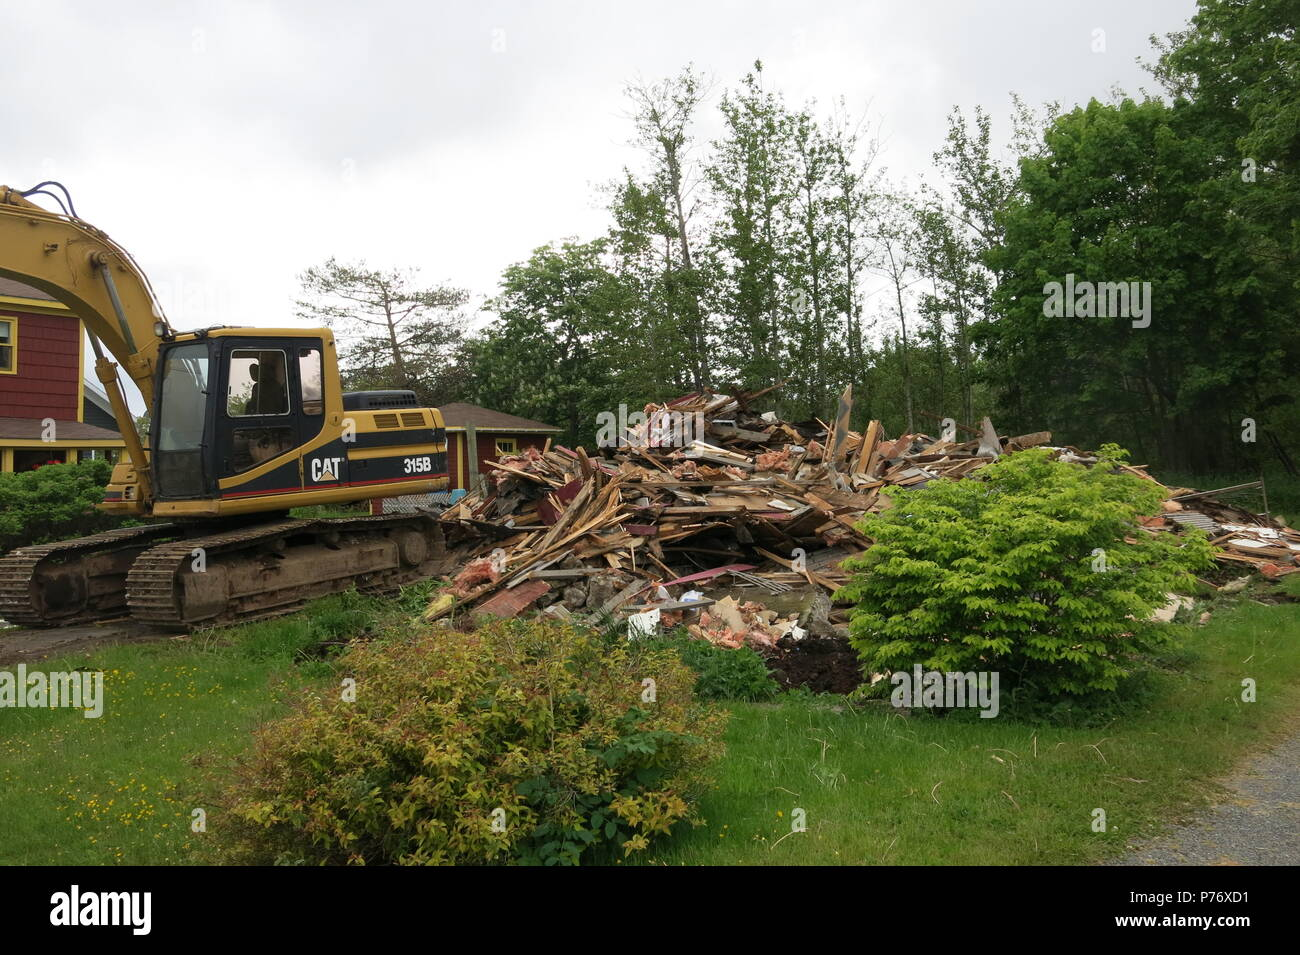 A pile of timbers on this plot is all that remains after the bulldozer has been in to demolish the former dwelling - Stock Image